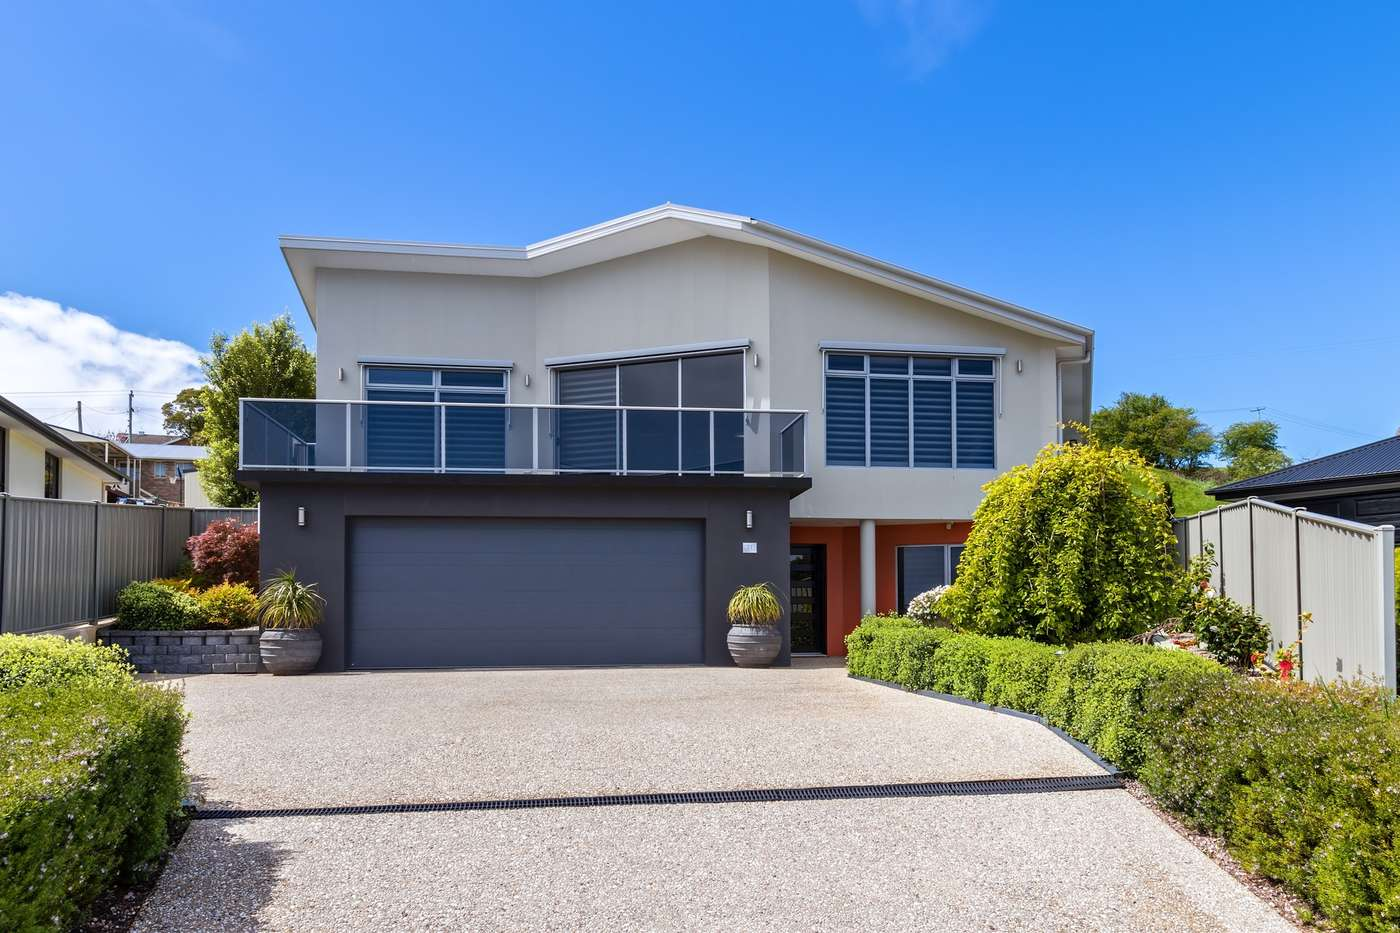 Main view of Homely house listing, 21 McDonald Street, Ulverstone, TAS 7315